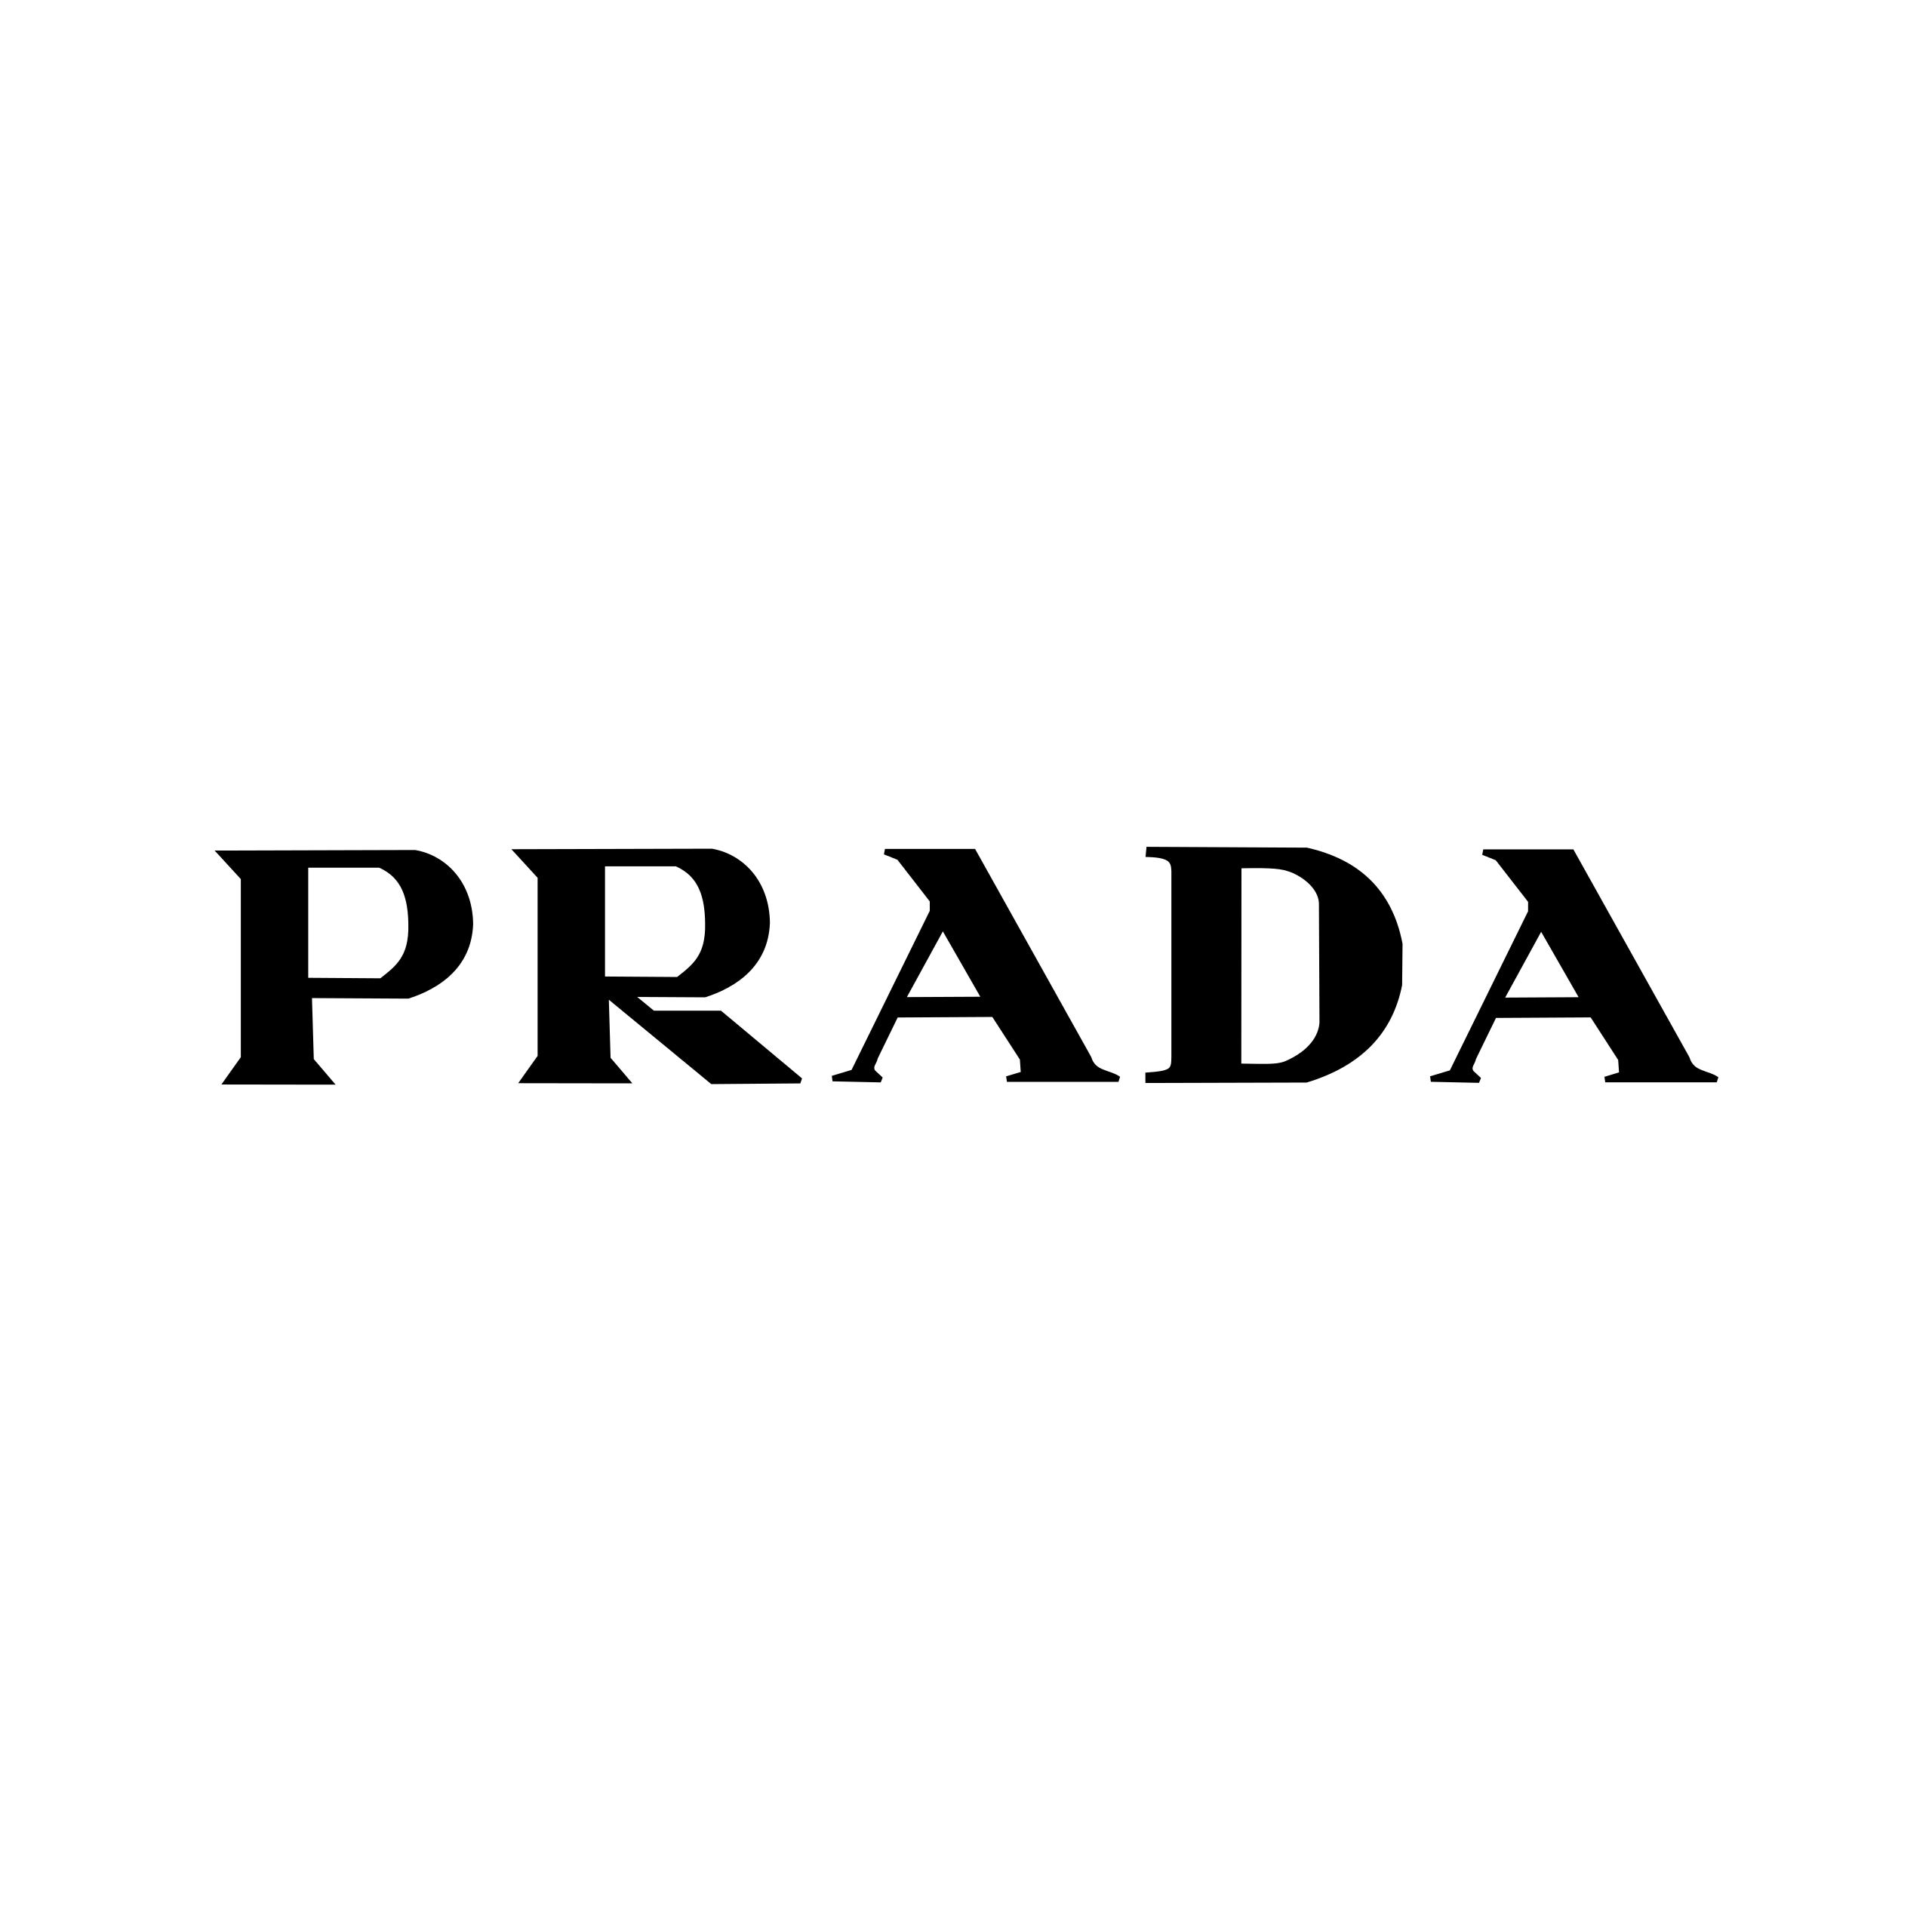 Word Mark Logo, Logos Design, Prada